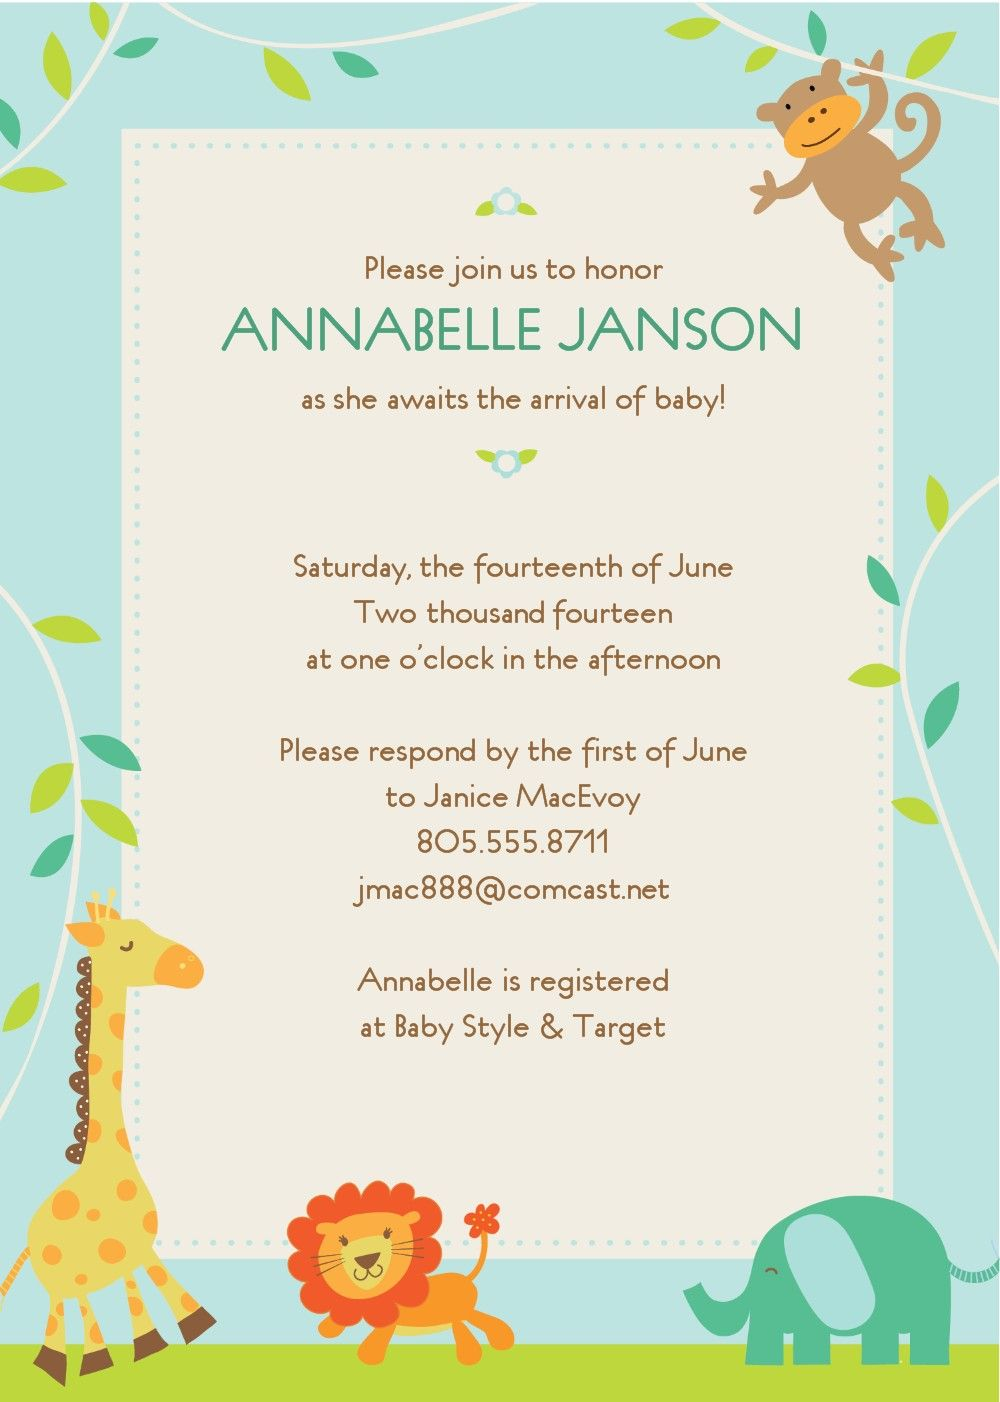 17 Best images about Baby shower invitation templates on Pinterest ...